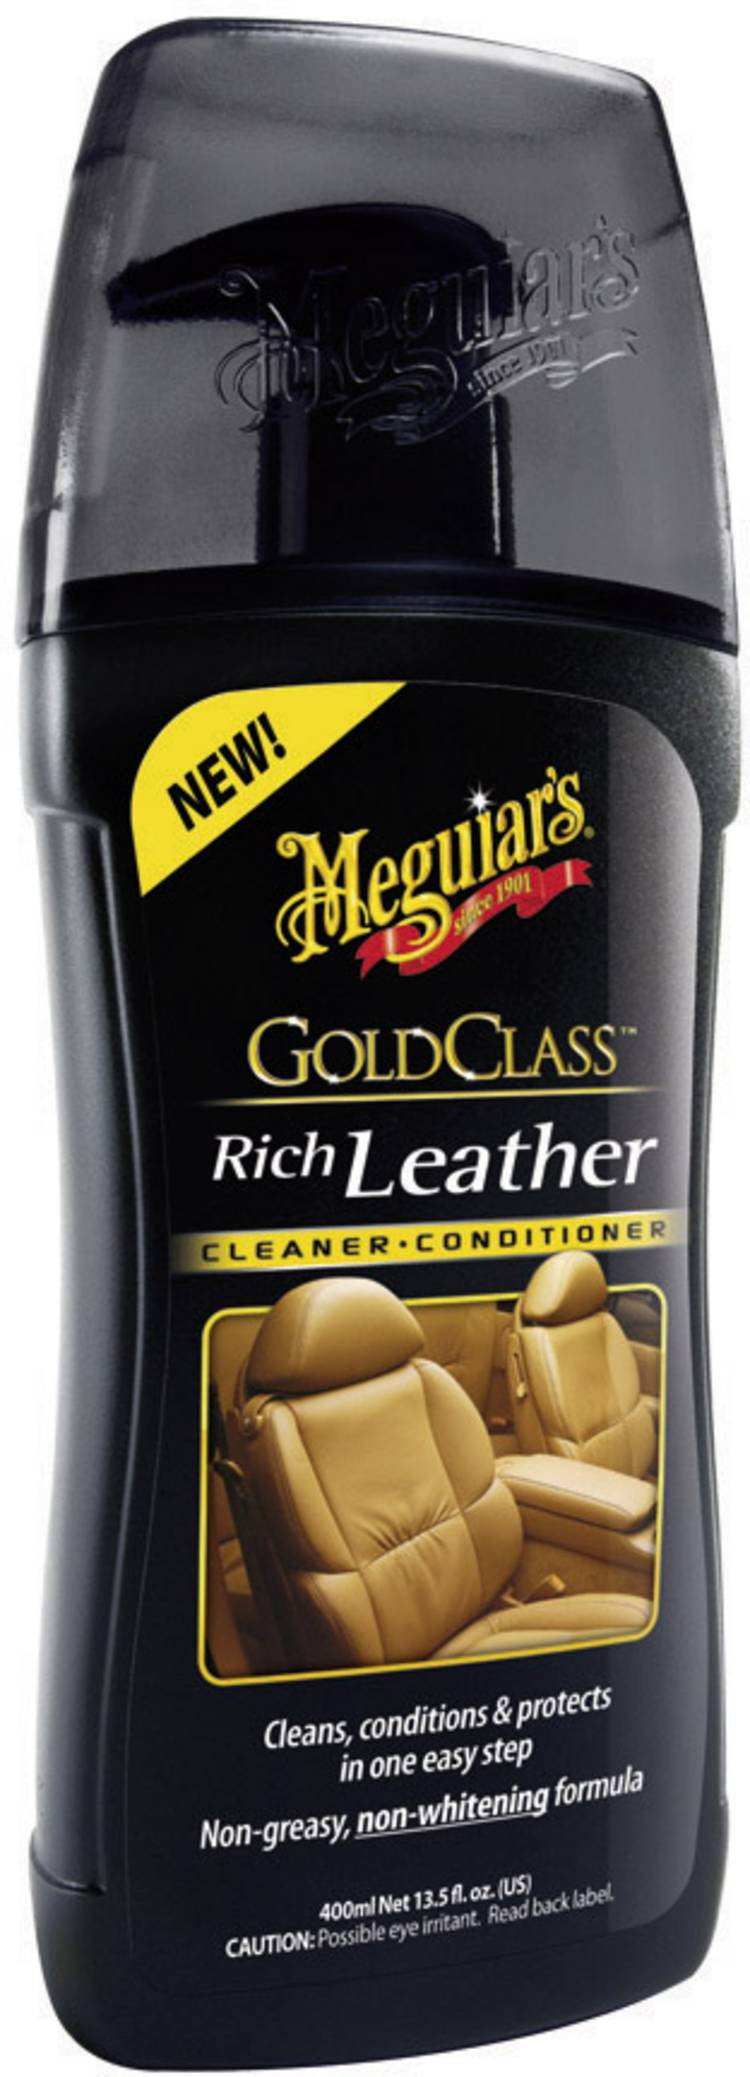 Image of Meguiars Gold Class Rich Leather Cleaner G17914 400 ml